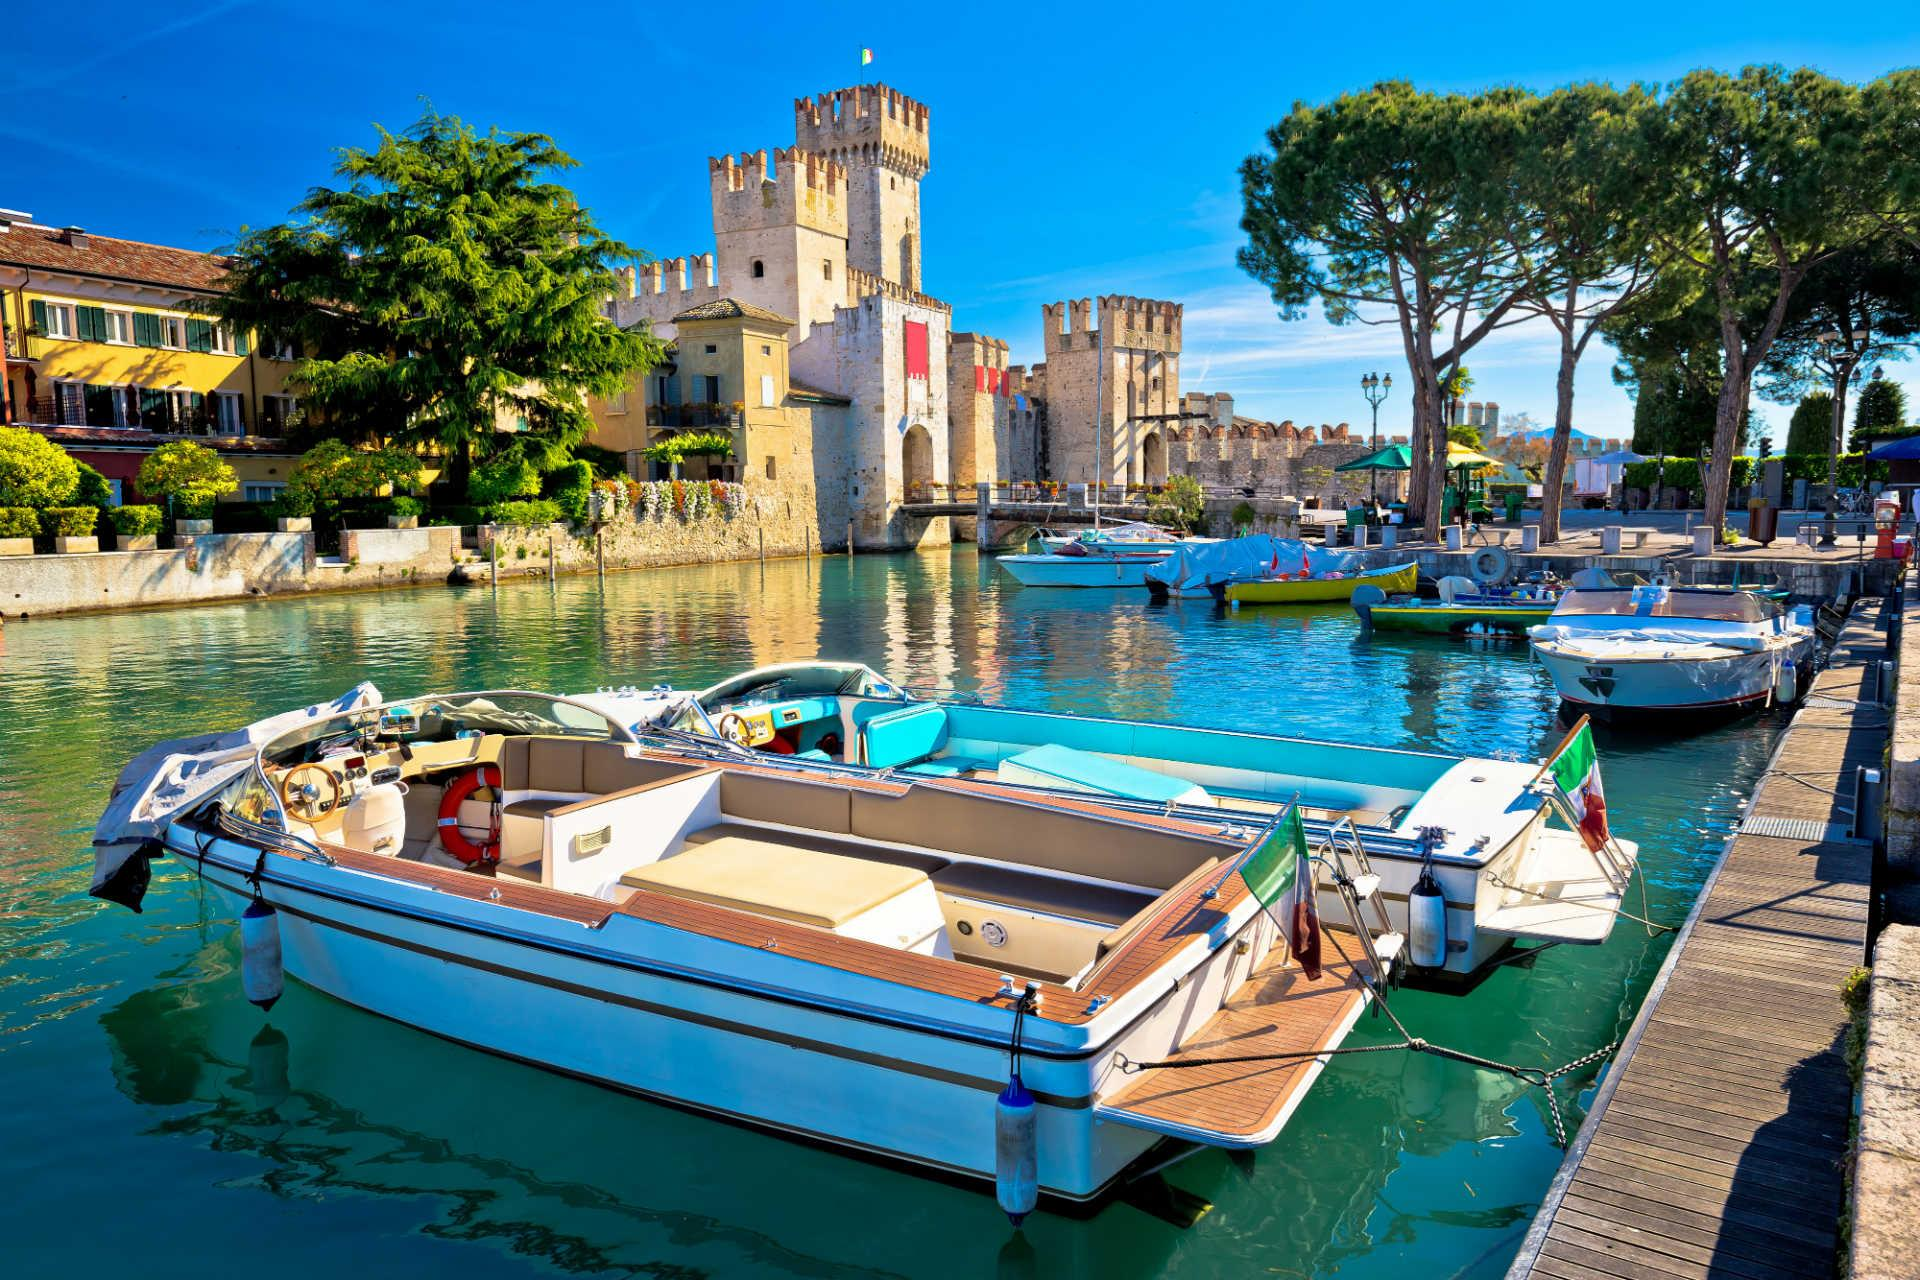 4 star peaceful and relaxing break in the south of Lake Garda